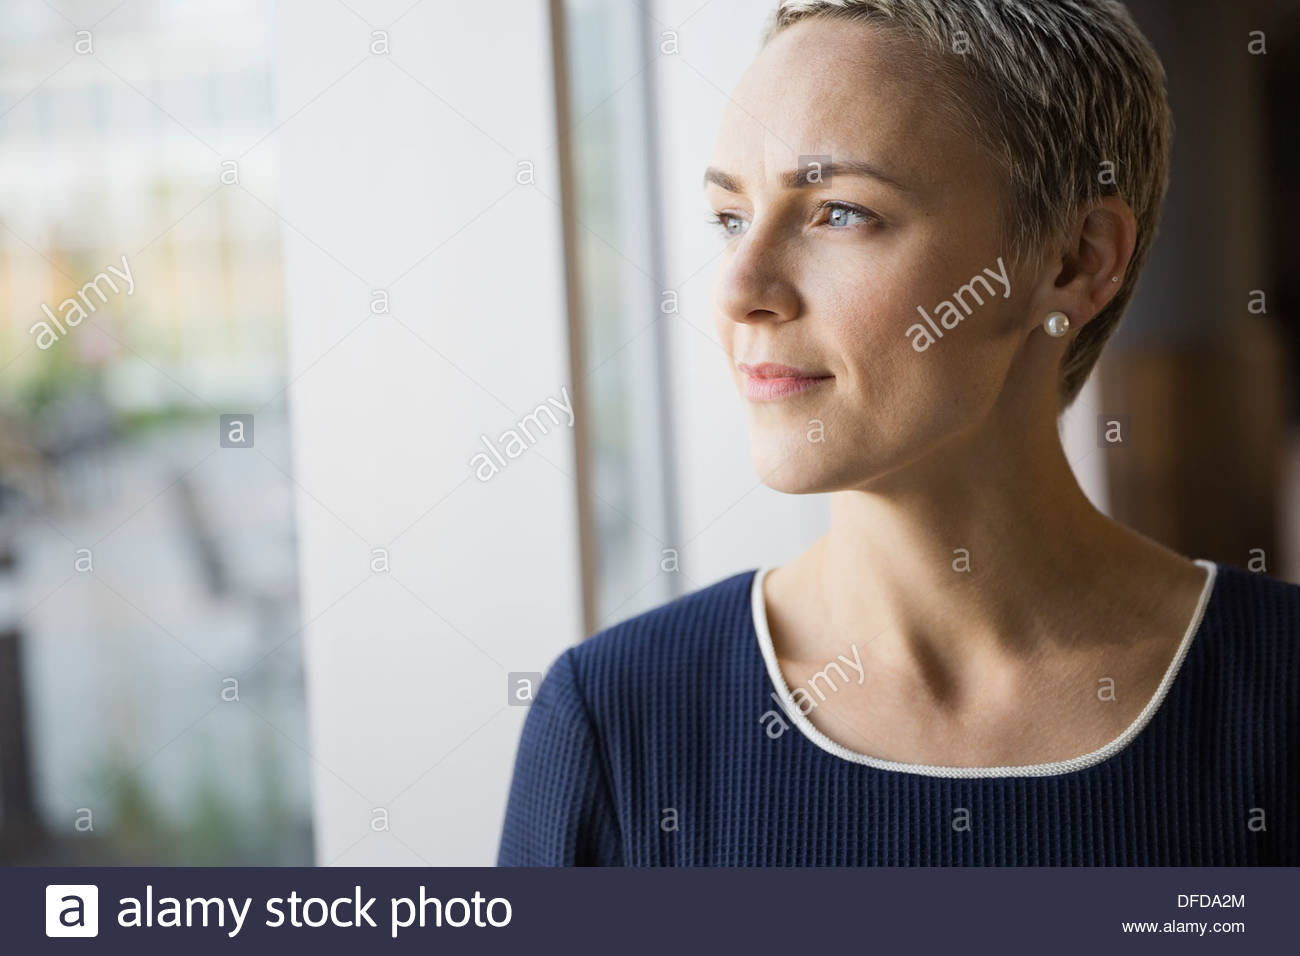 Thoughtful businesswoman looking out window in hotel room - Stock Image